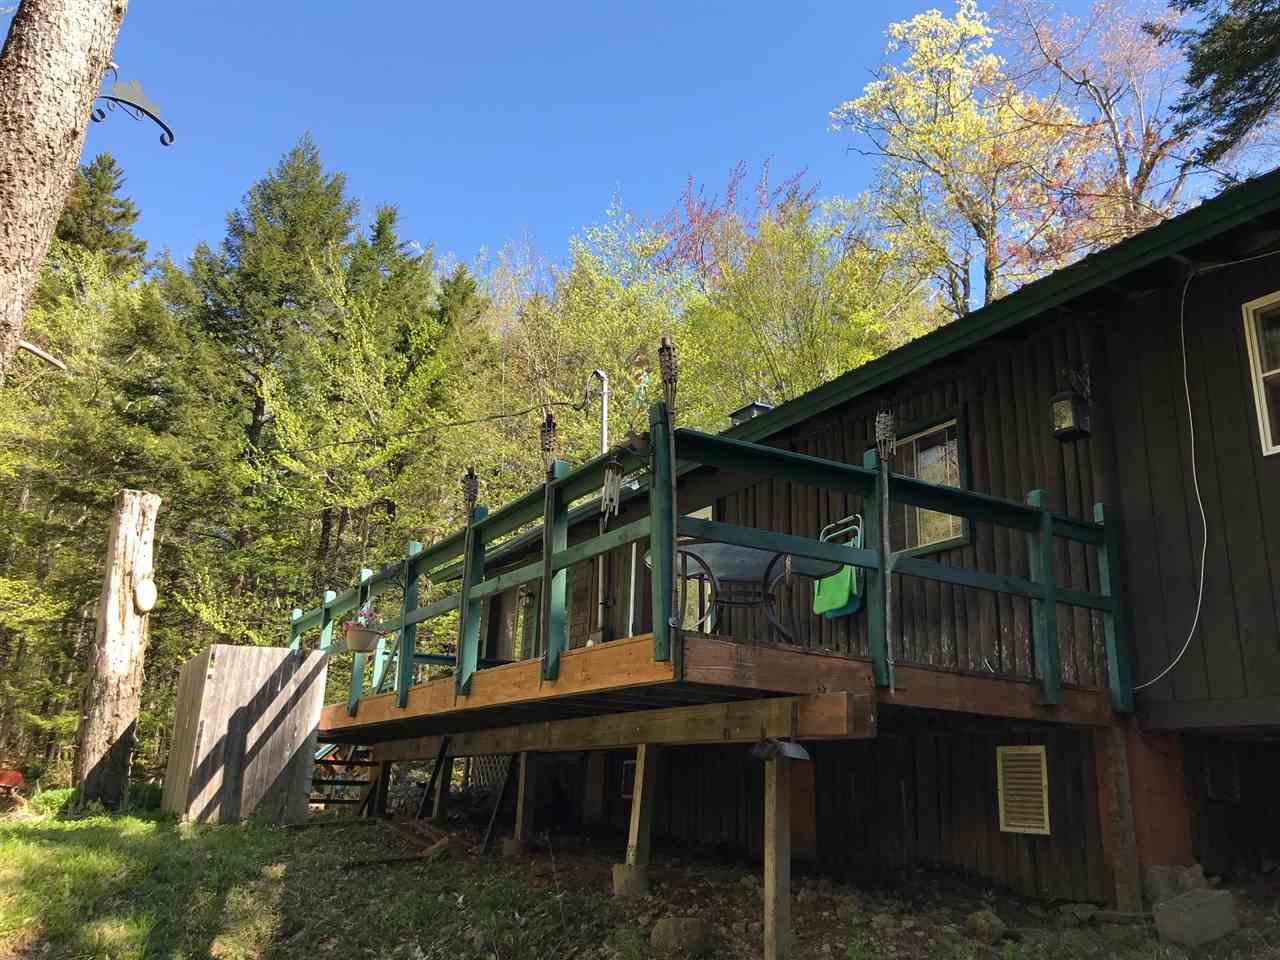 MLS 4744823: 136 Beaver Lake Drive-Unit 115/81, Stoddard NH